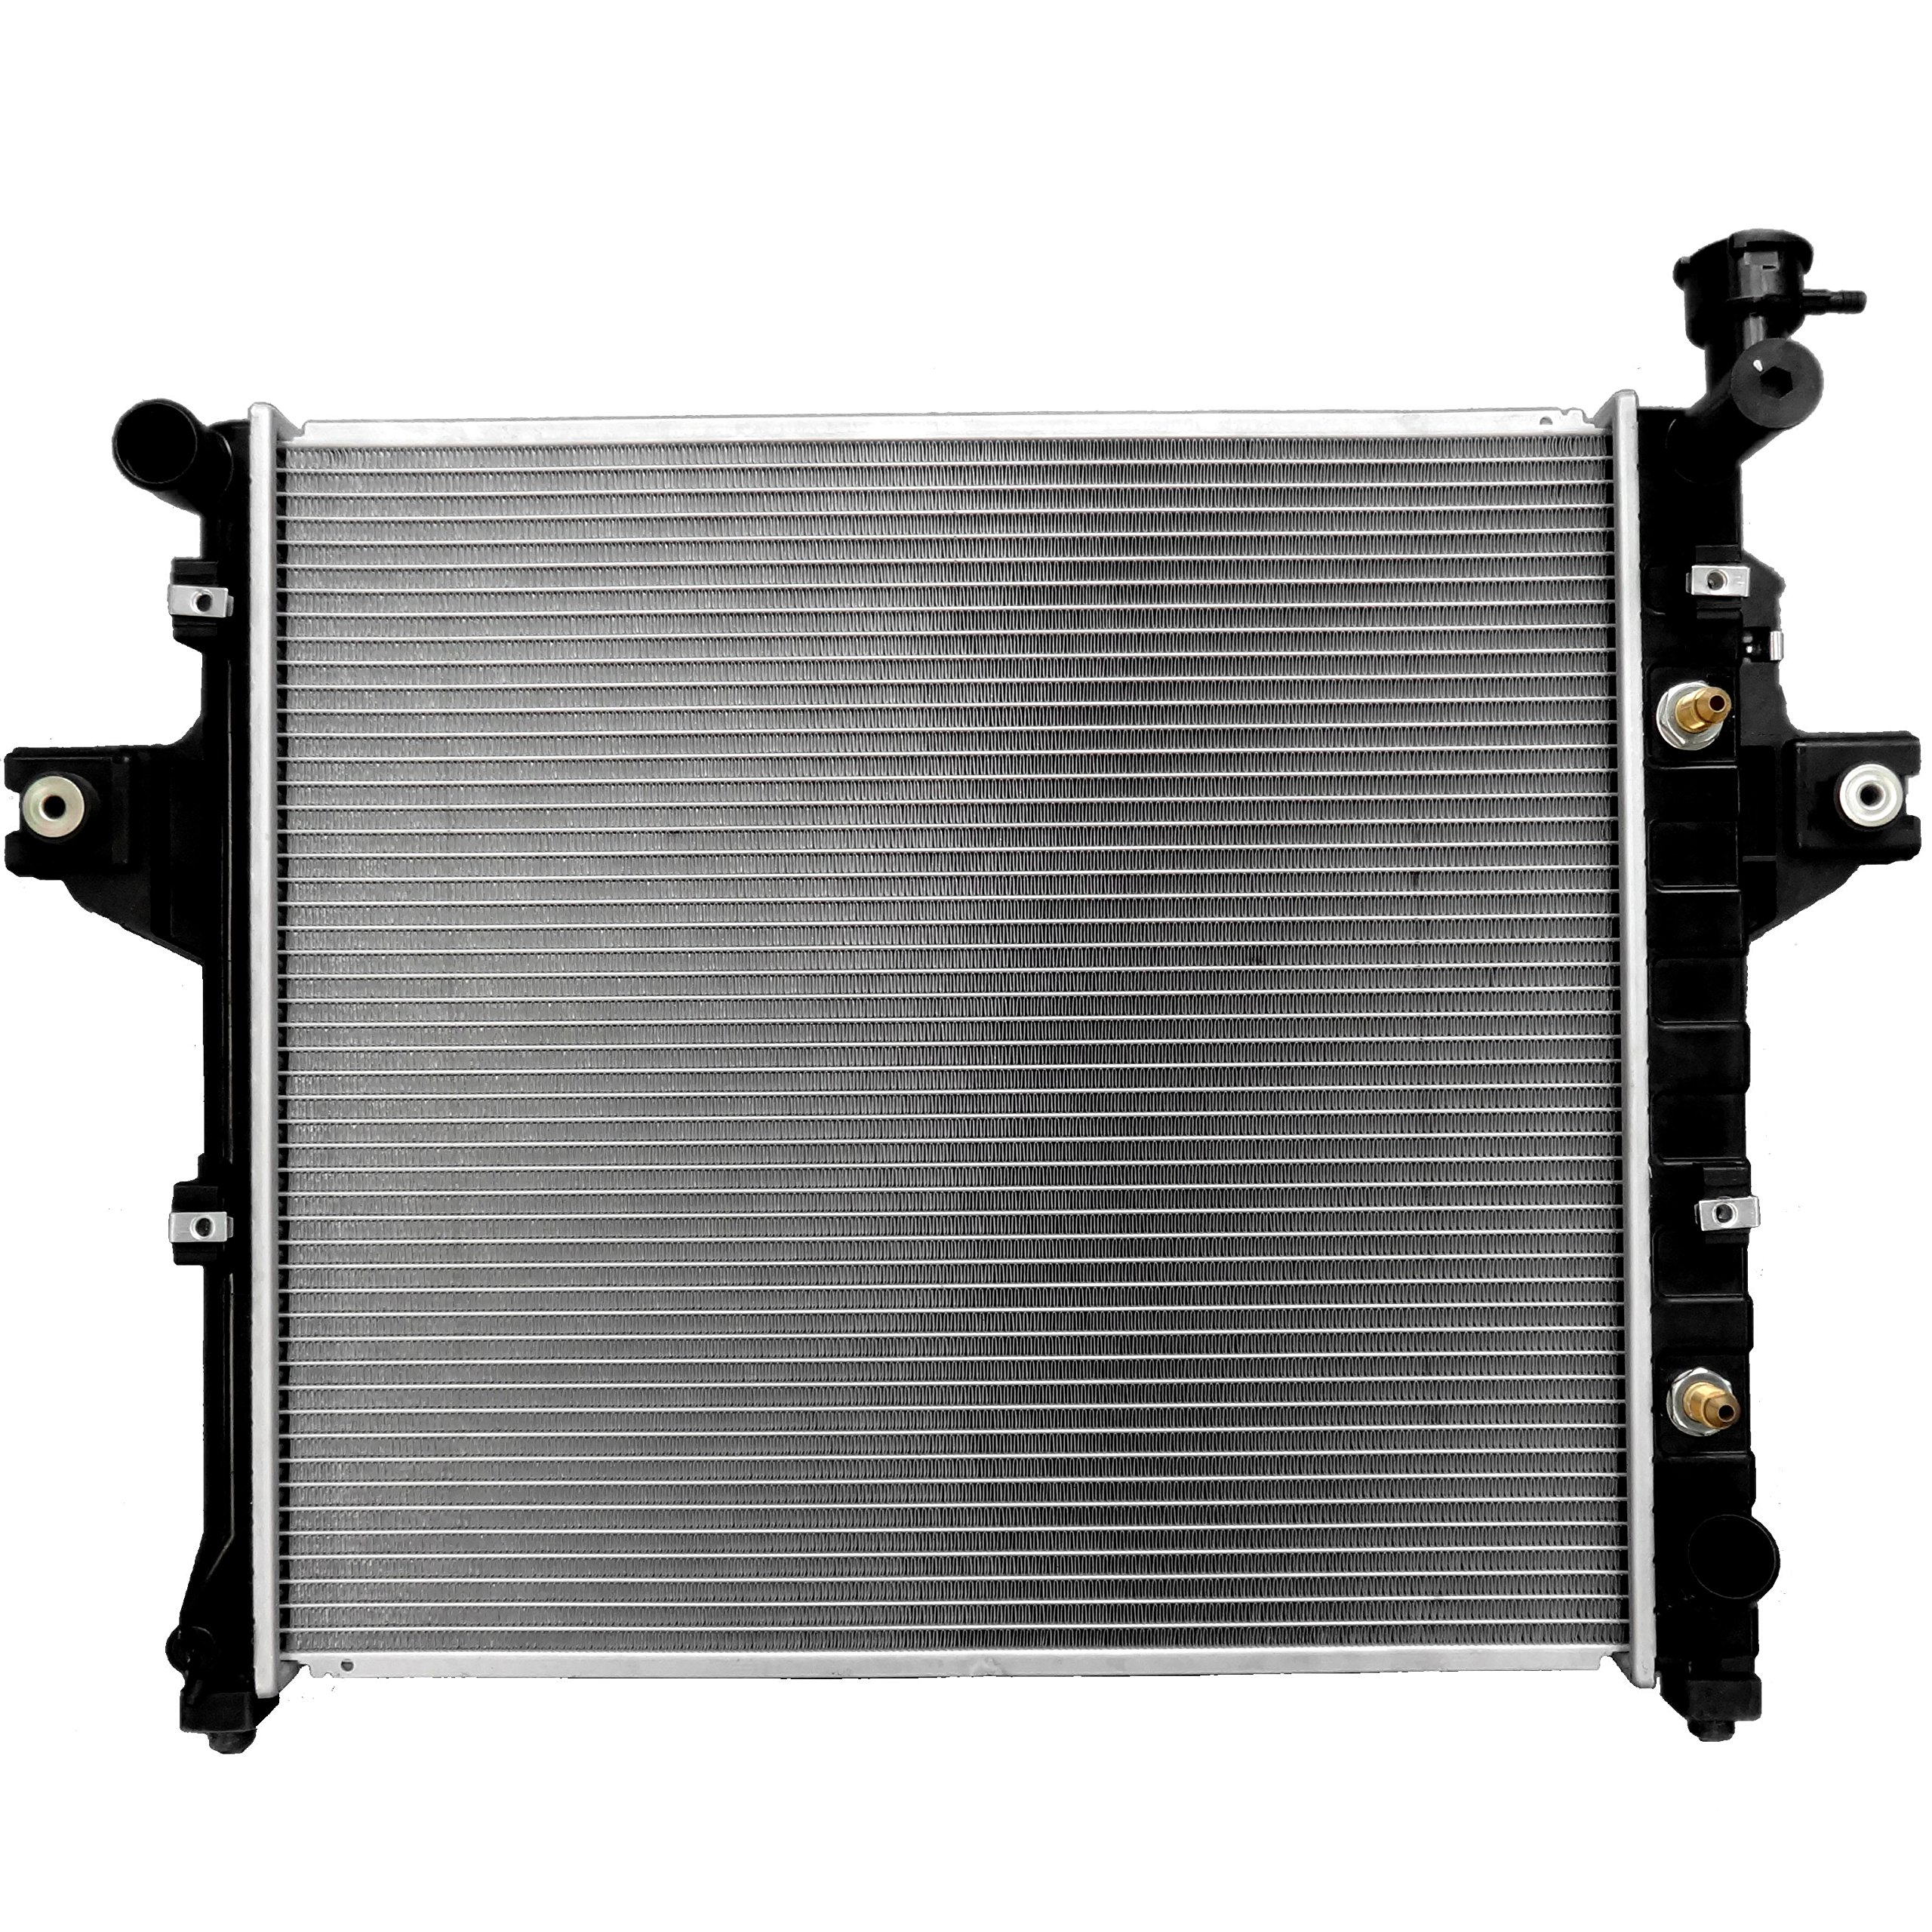 SCITOO Radiator 2263 for 1999 2000 Jeep Grand Cherokee Laredo/Limited V8 4.7L by Scitoo